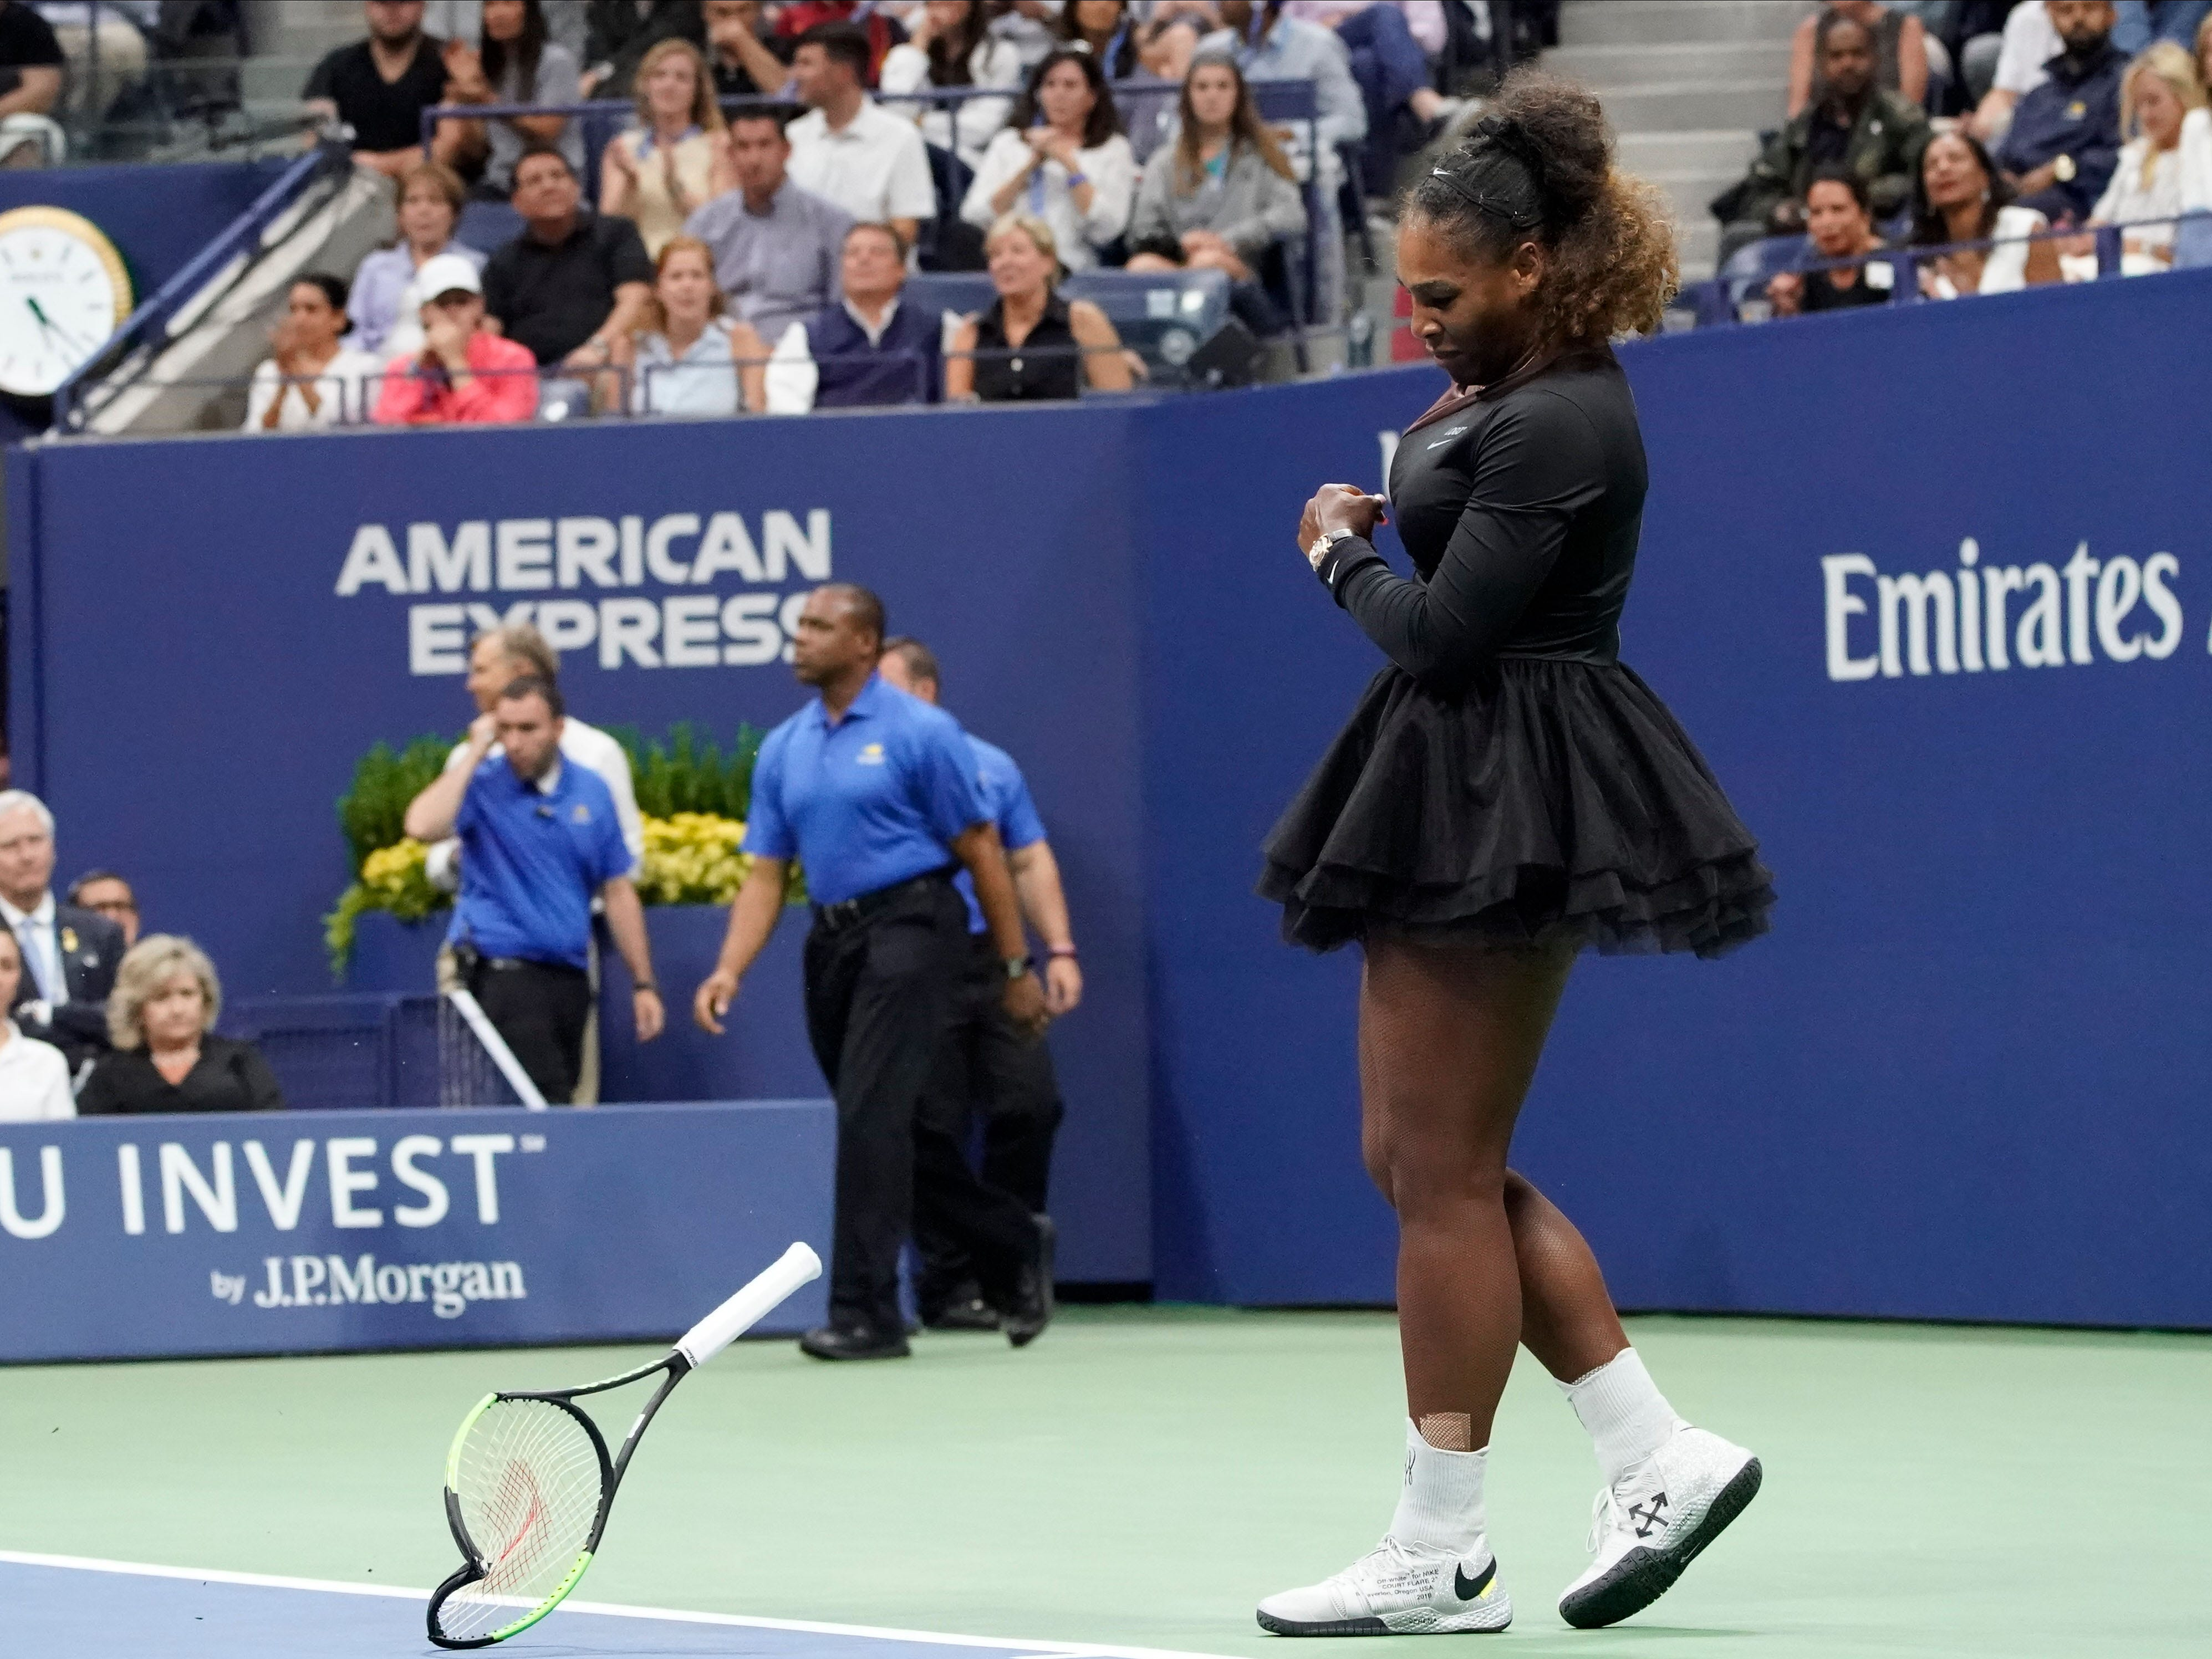 Serena Williams breaks her racket after losing a game to Naomi Osaka. Williams lost a point for a code violation.